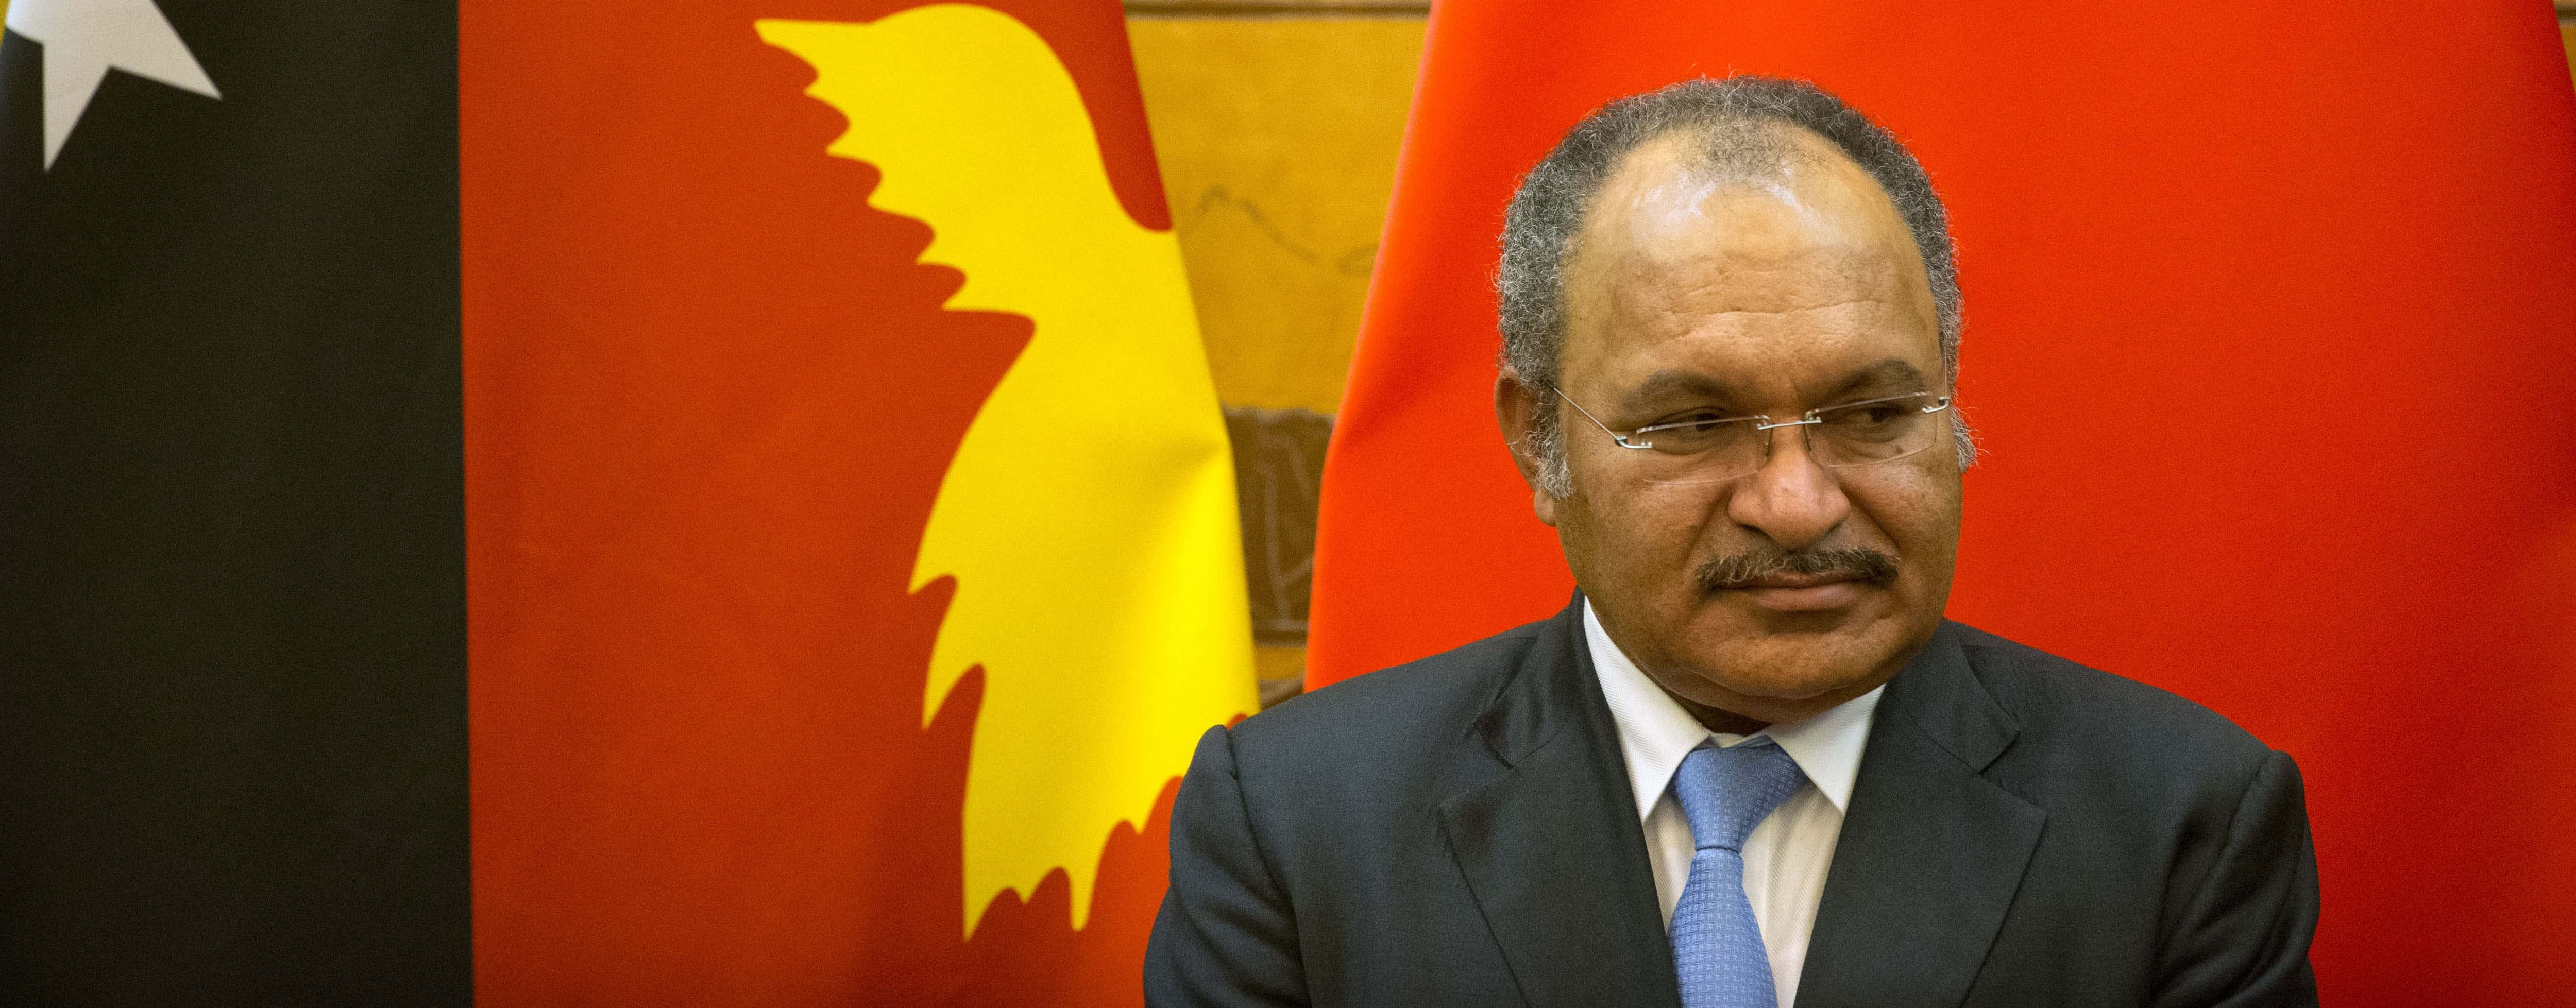 Papua New Guinea's Prime Minister Peter O'Neill (Photo: Mark Schiefelbein/Getty)